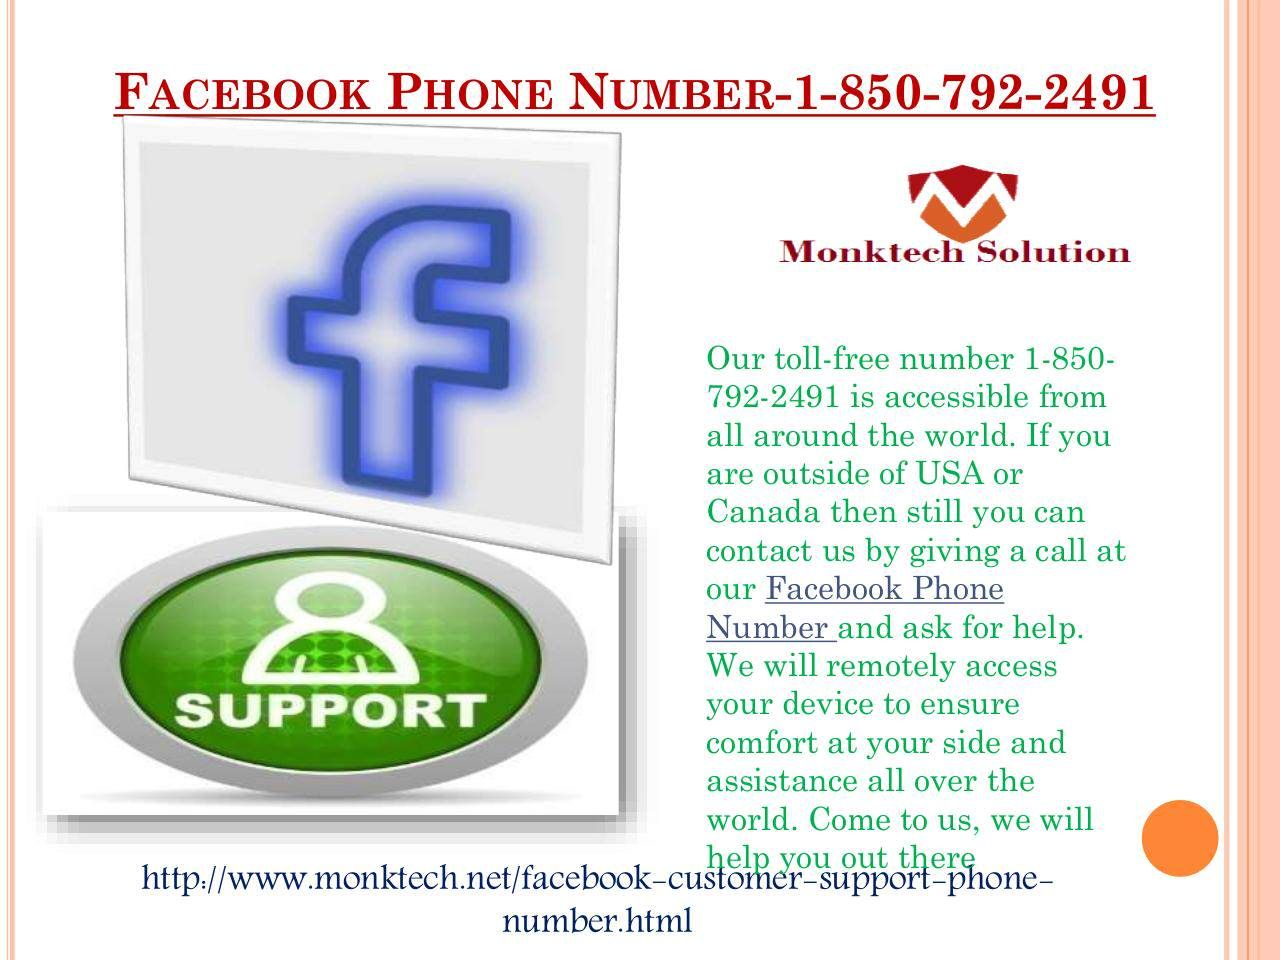 Where will I be redirected after dialing Facebook Phone number 1-850-792-2491? You will be redirected to our experts after dialing Facebook Phone number 1-850-792-2491 and they will help you in the following manner:-Do you want to reactivate your Facebook account?Enhance your account security.100% customer satisfaction. More:- http://www.monktech.net/facebook-customer-support-phone-number.html